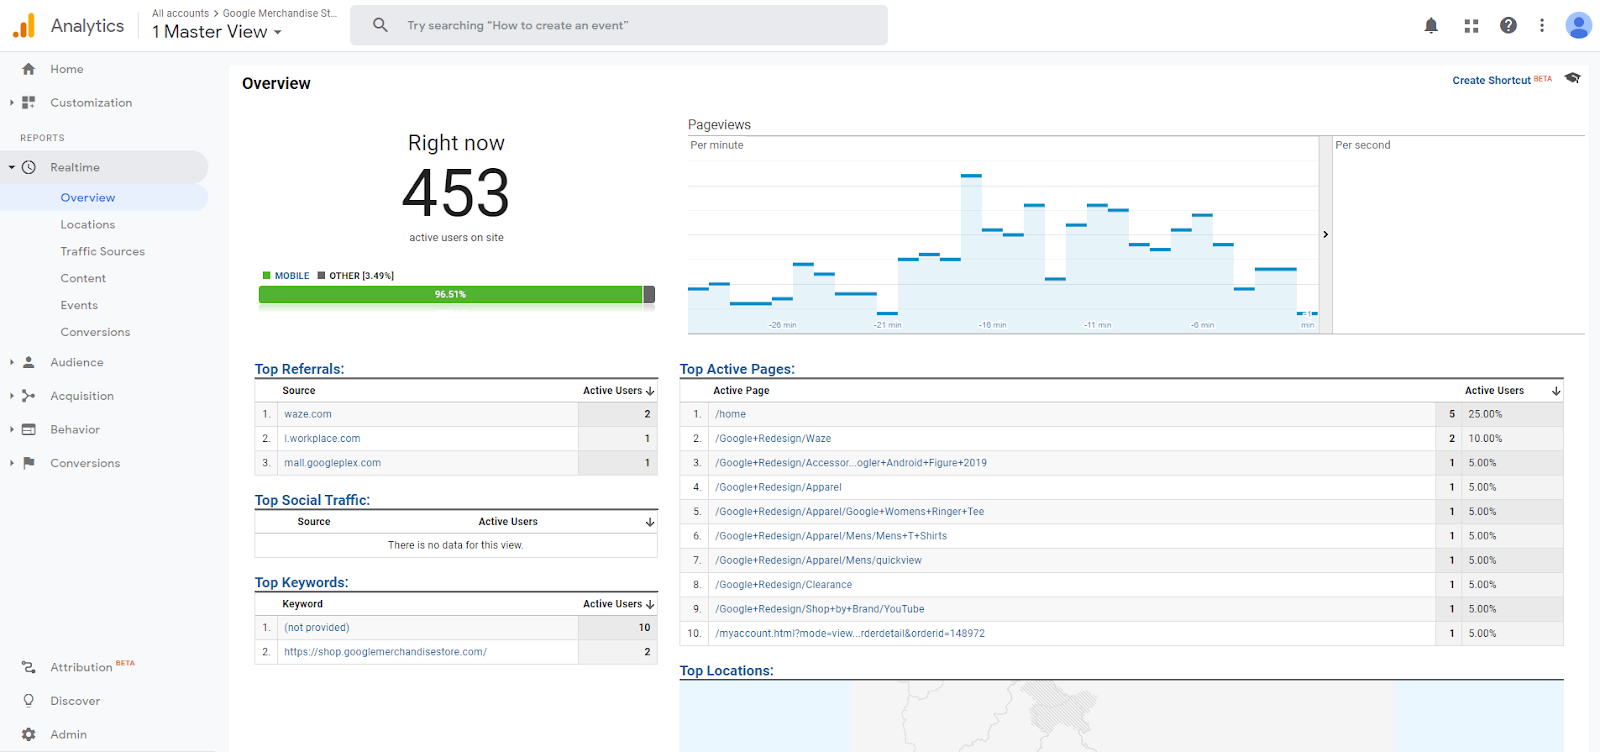 Google Analytics Realtime Report overview.